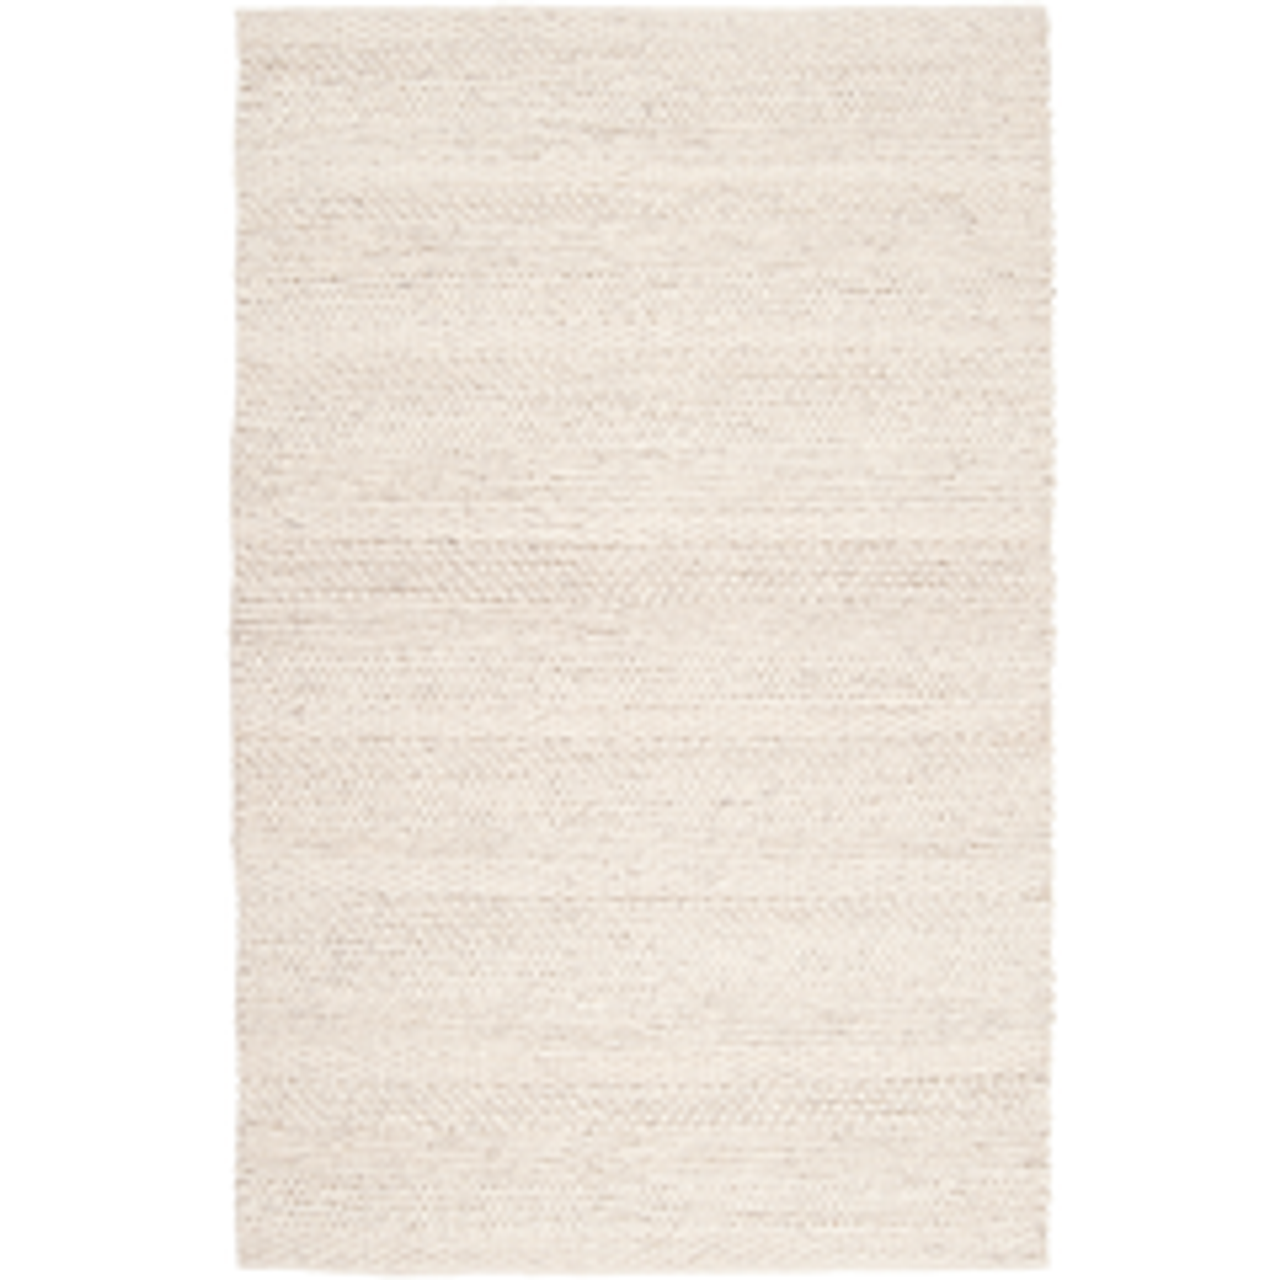 Knitted Natural Wood Tahoe Area Rug - Ivory